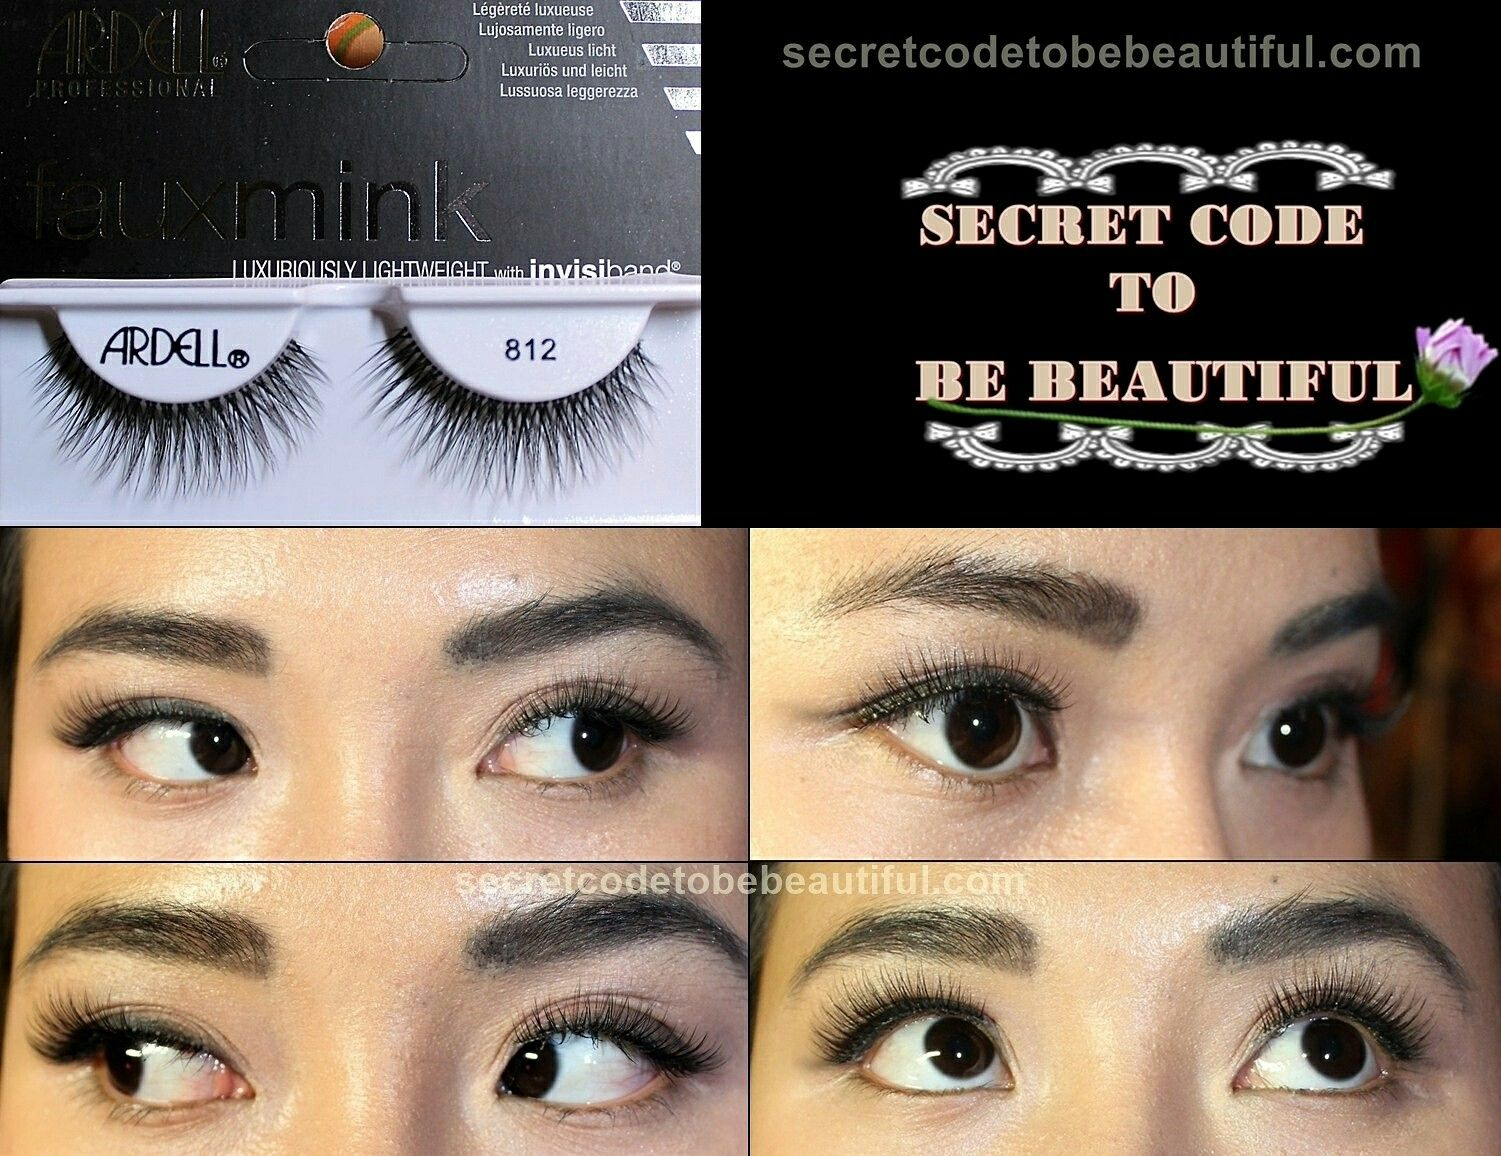 fb1c2718232 Ardell faux mink lashes 812 Visit secretcodetobebeautiful.com for review